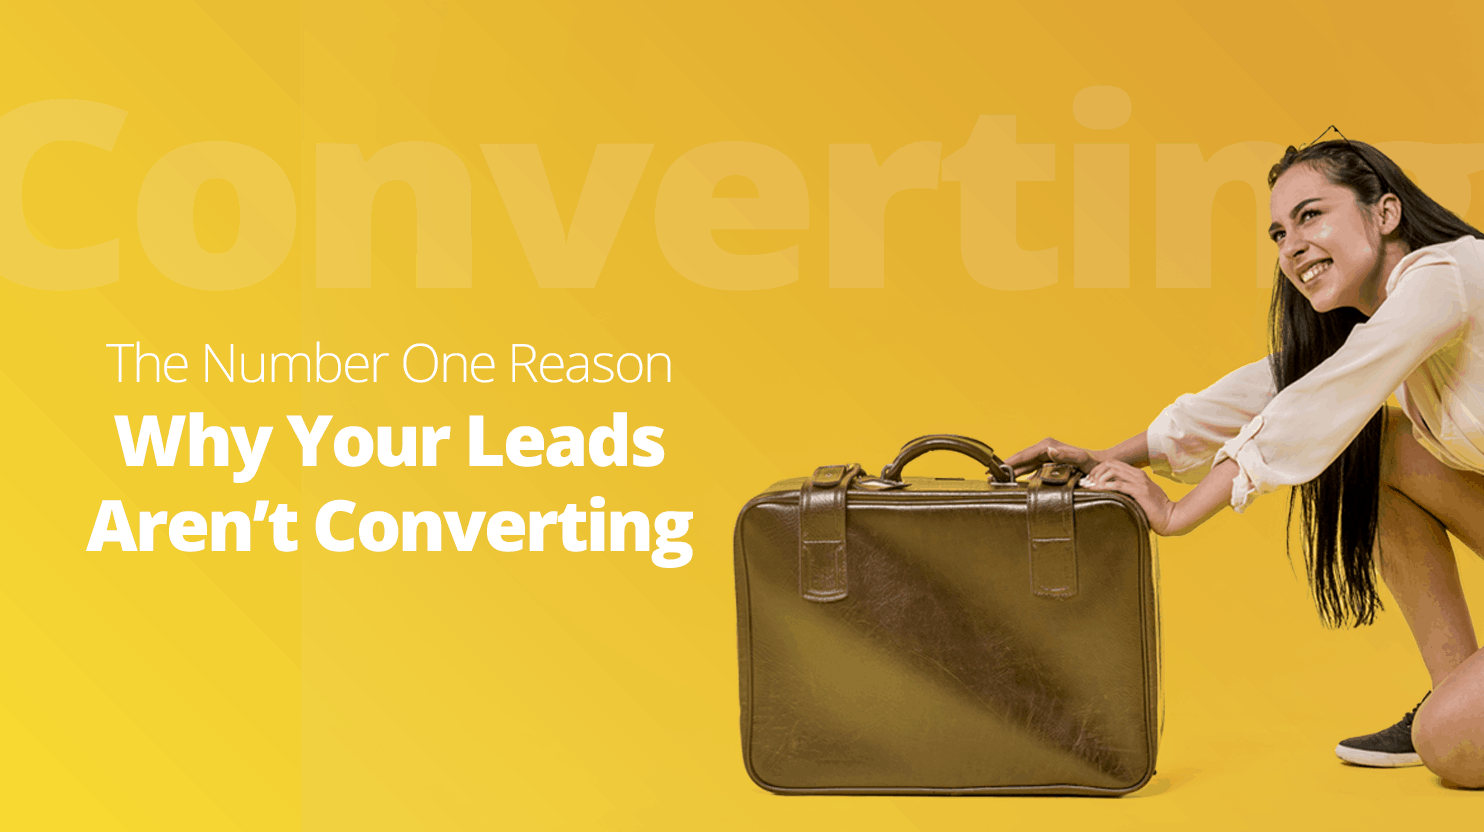 The Number One Reason Why Your Leads are Not Converting